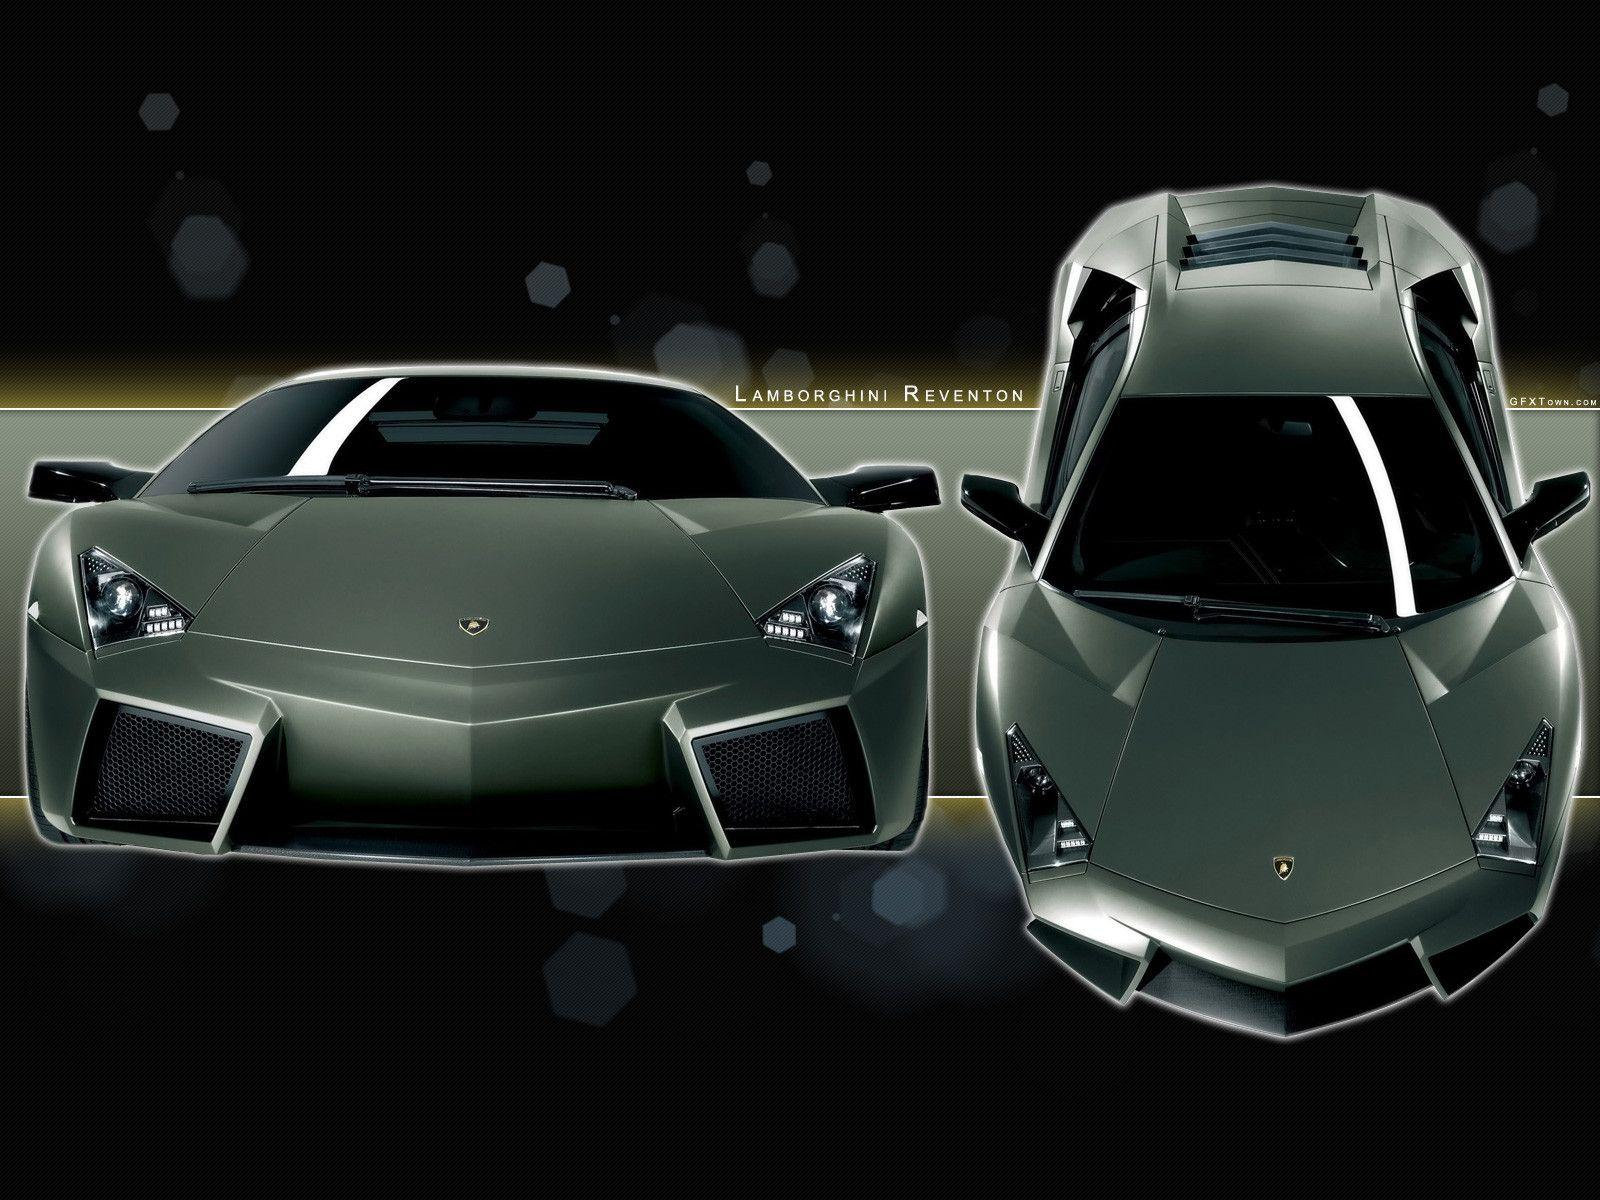 lamborghini reventon image wallpaper - photo #18